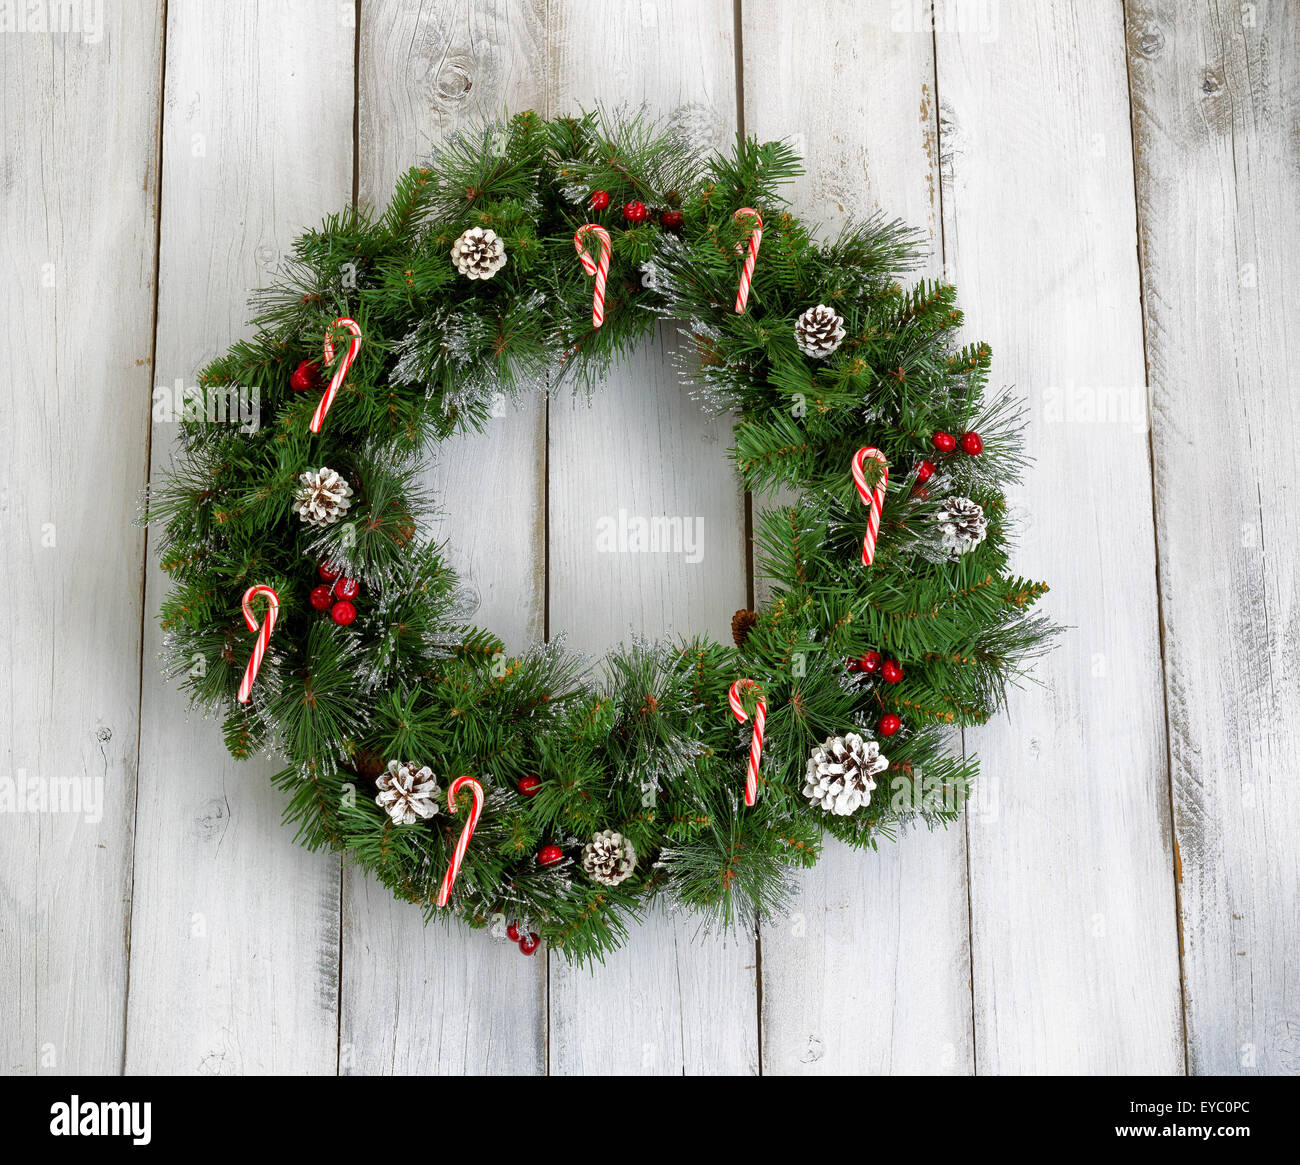 Christmas Wreath Decorated With Pine Cones Candy Canes And Red Stock Photo Alamy